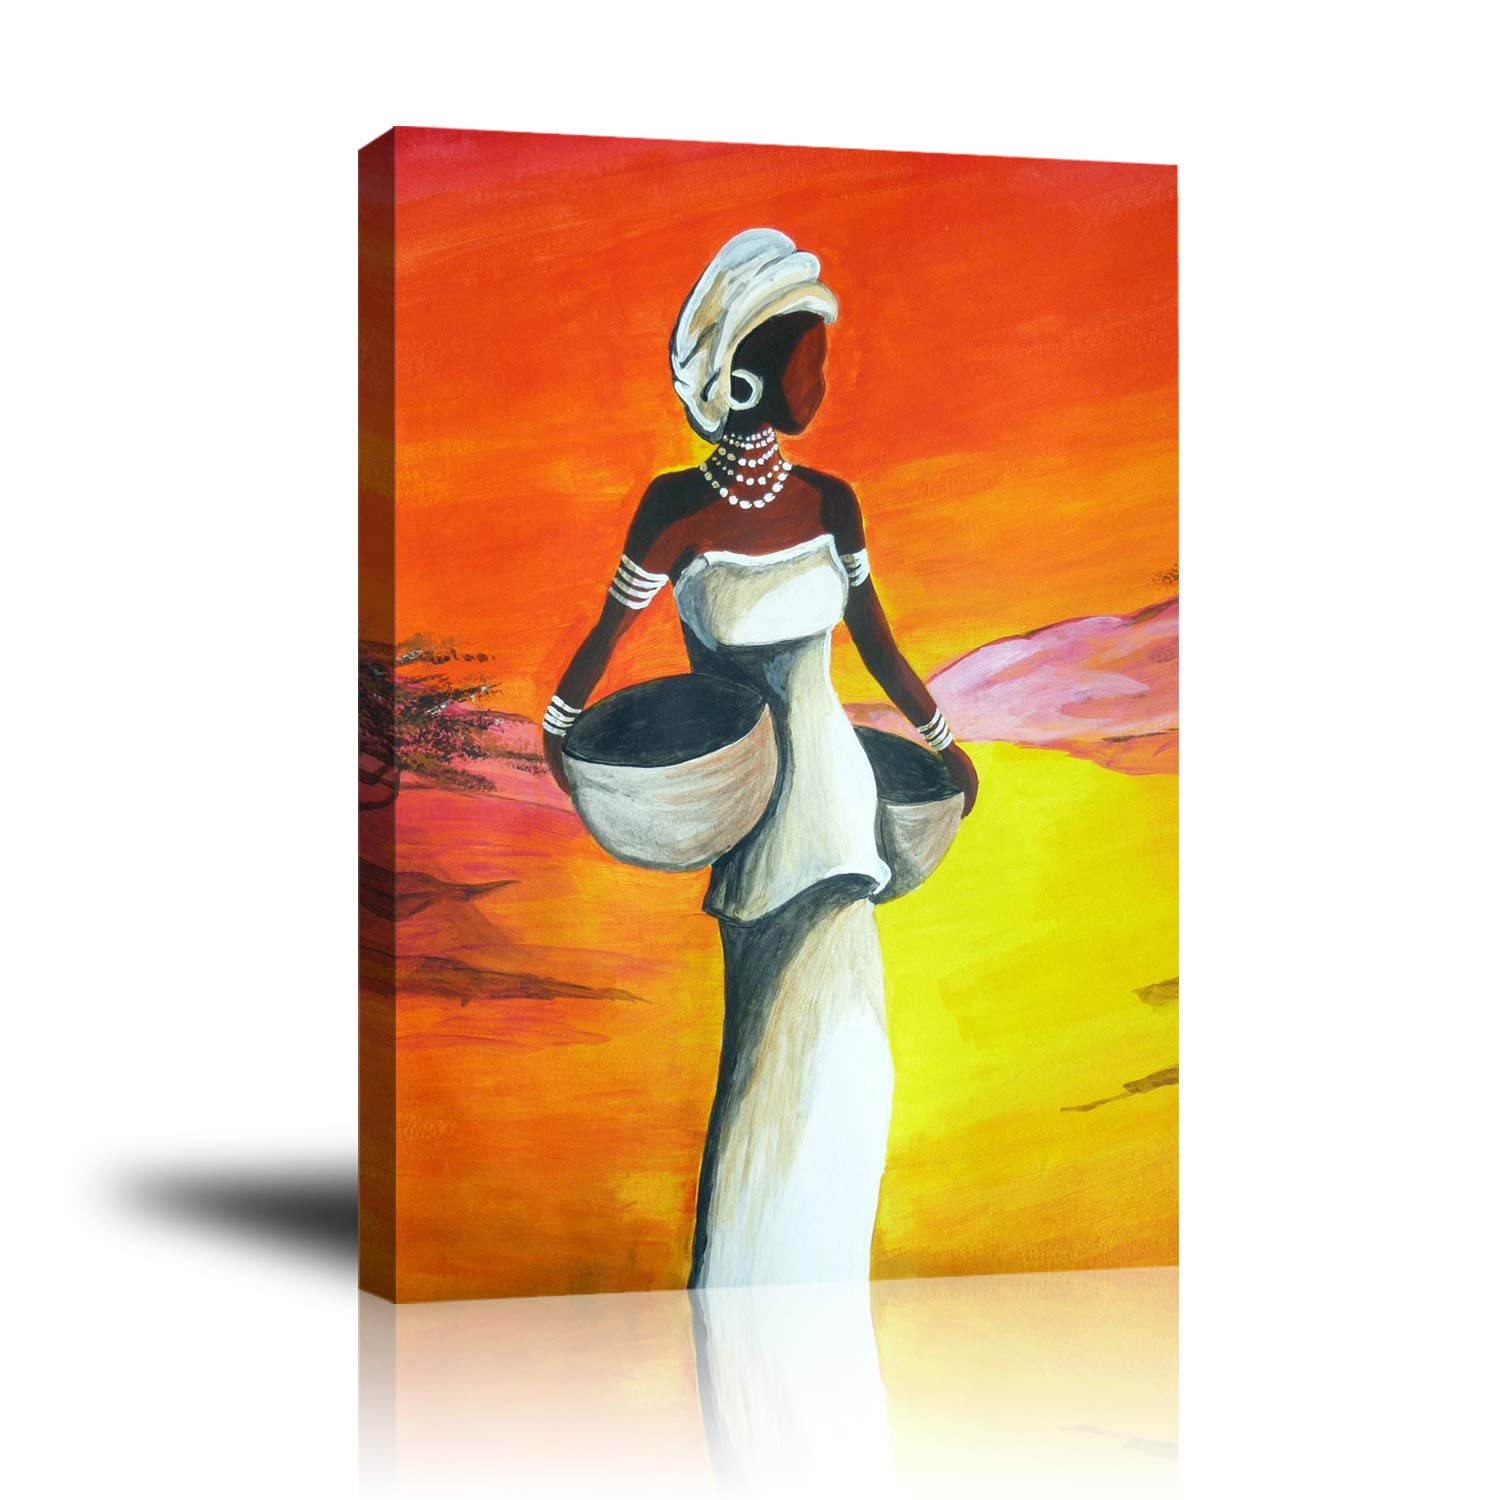 Premium Canvas Wall Art, Abstract Art White Elegant Woman Holding Cylinder Painting, Modern Decorative Artwork for Bedroom Living Room Home Decor, Stretched and Unframed Ready to Hang 16 x 20 inch